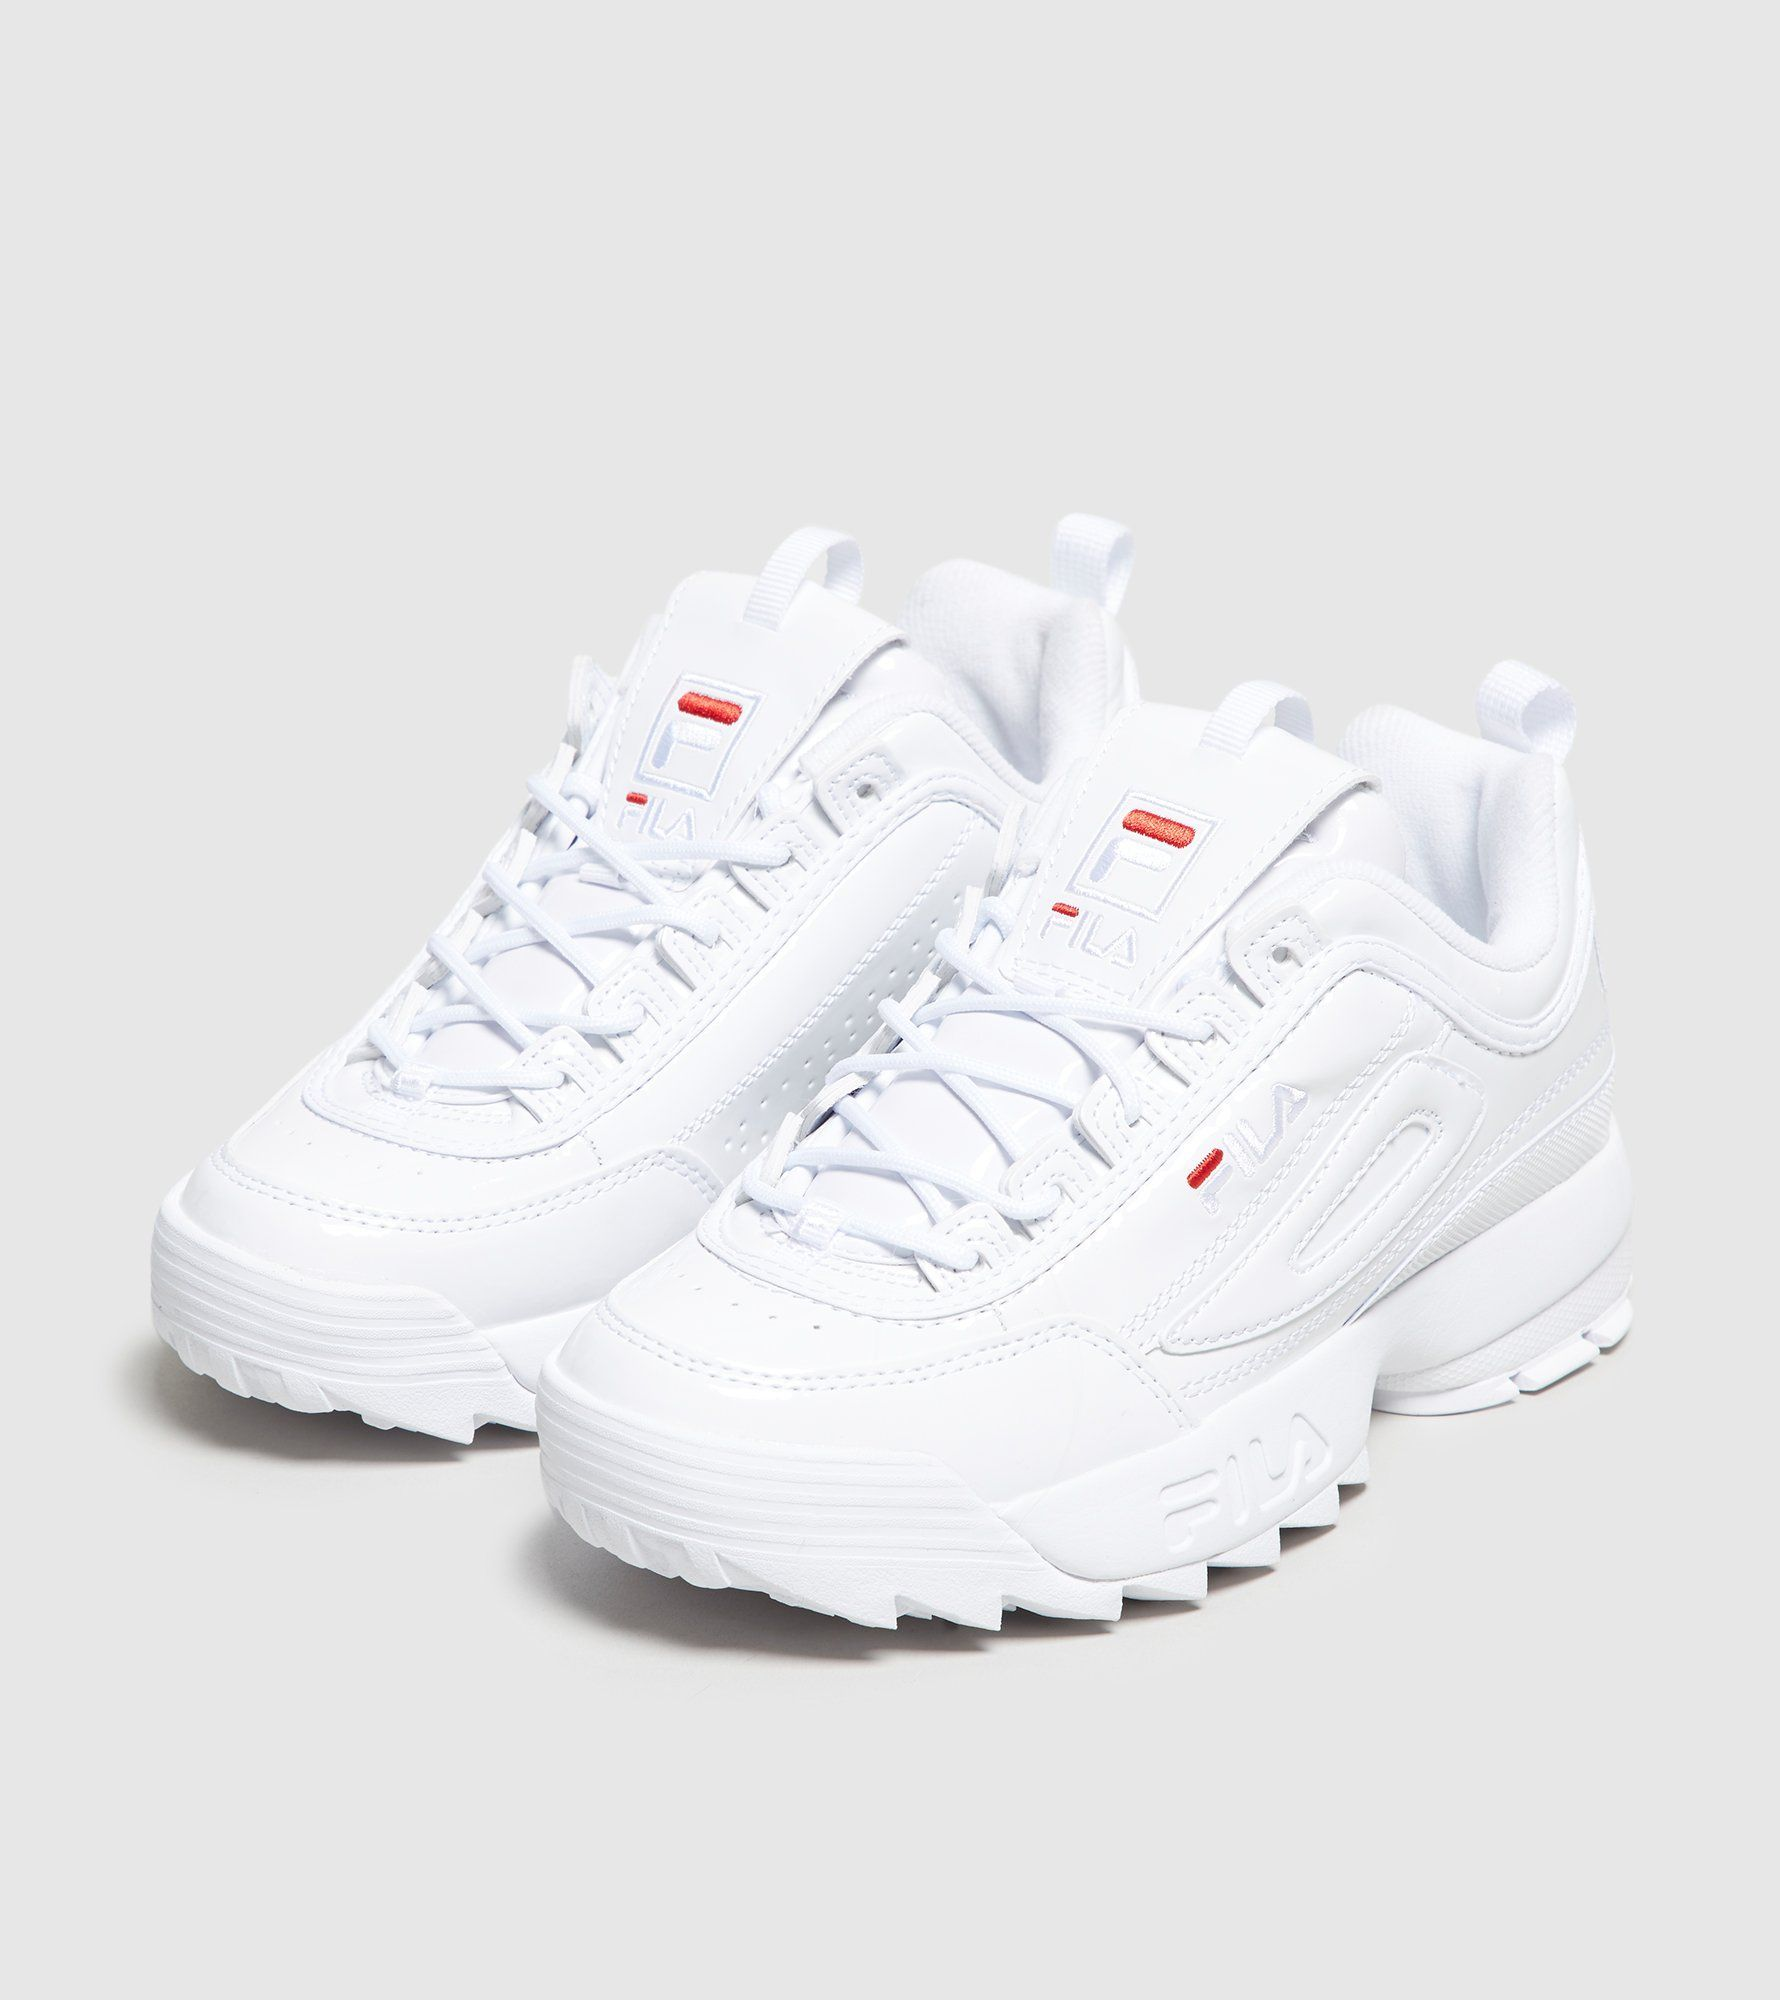 super cute 07bfd 6143f Sneakers women - Fila Disruptor II Chaussures Fila, Chaussures Femme,  Basket Tendance, Sneakers